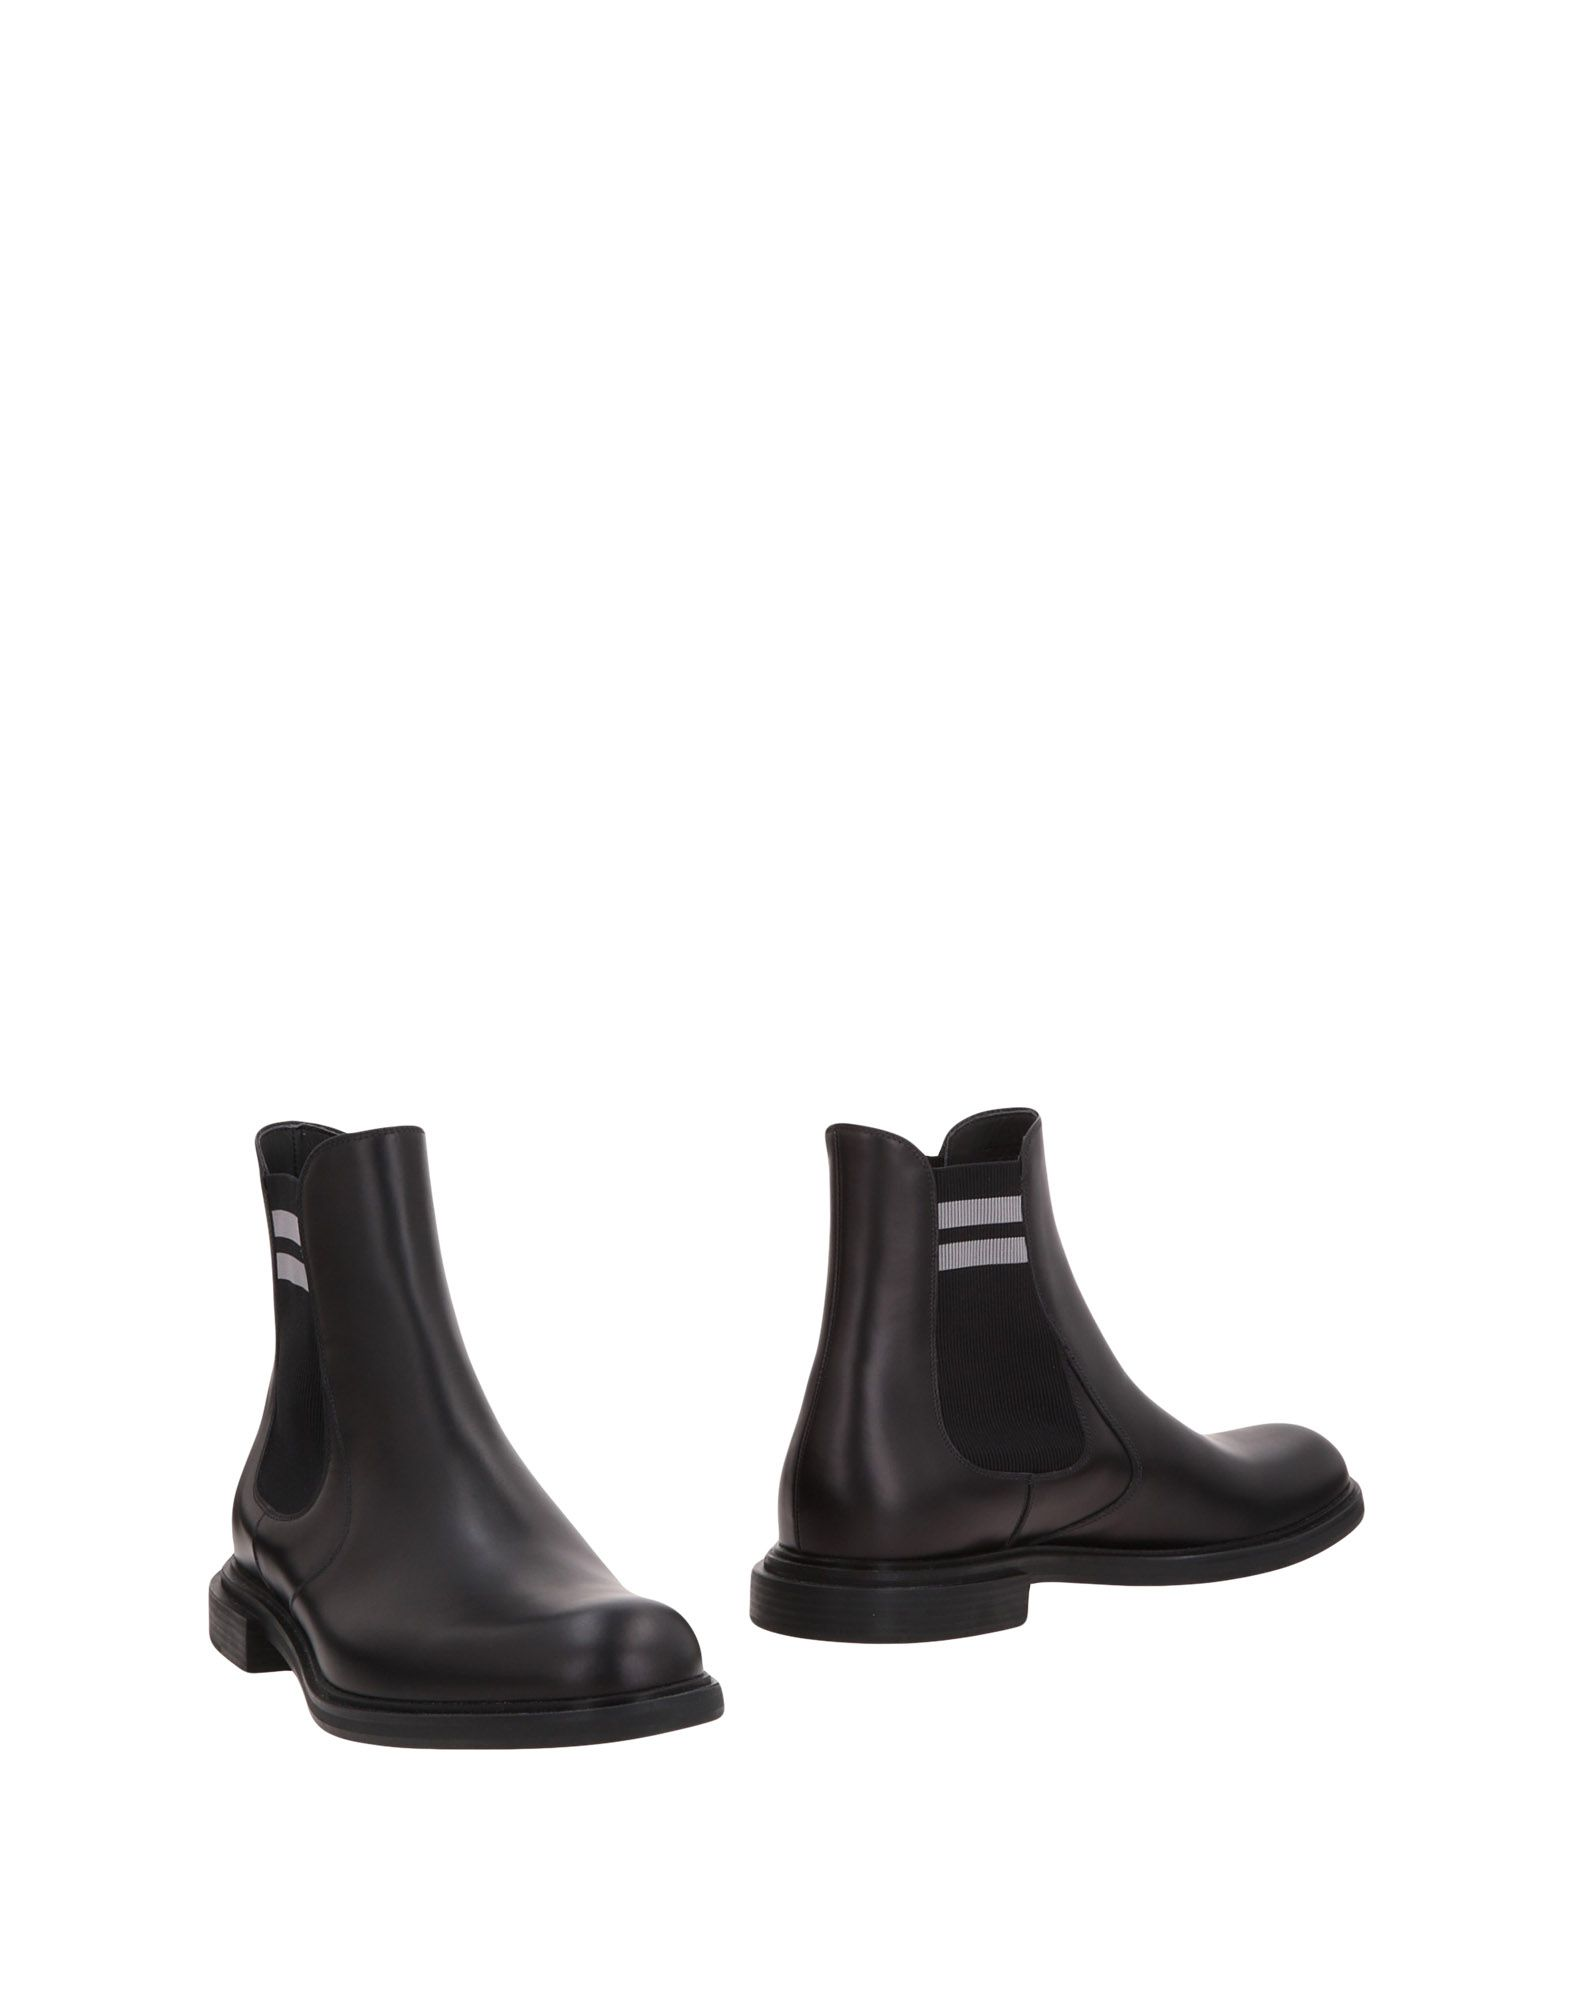 Fendi Boots online - Men Fendi Boots online Boots on  United Kingdom - 11465463IB 6b8a04